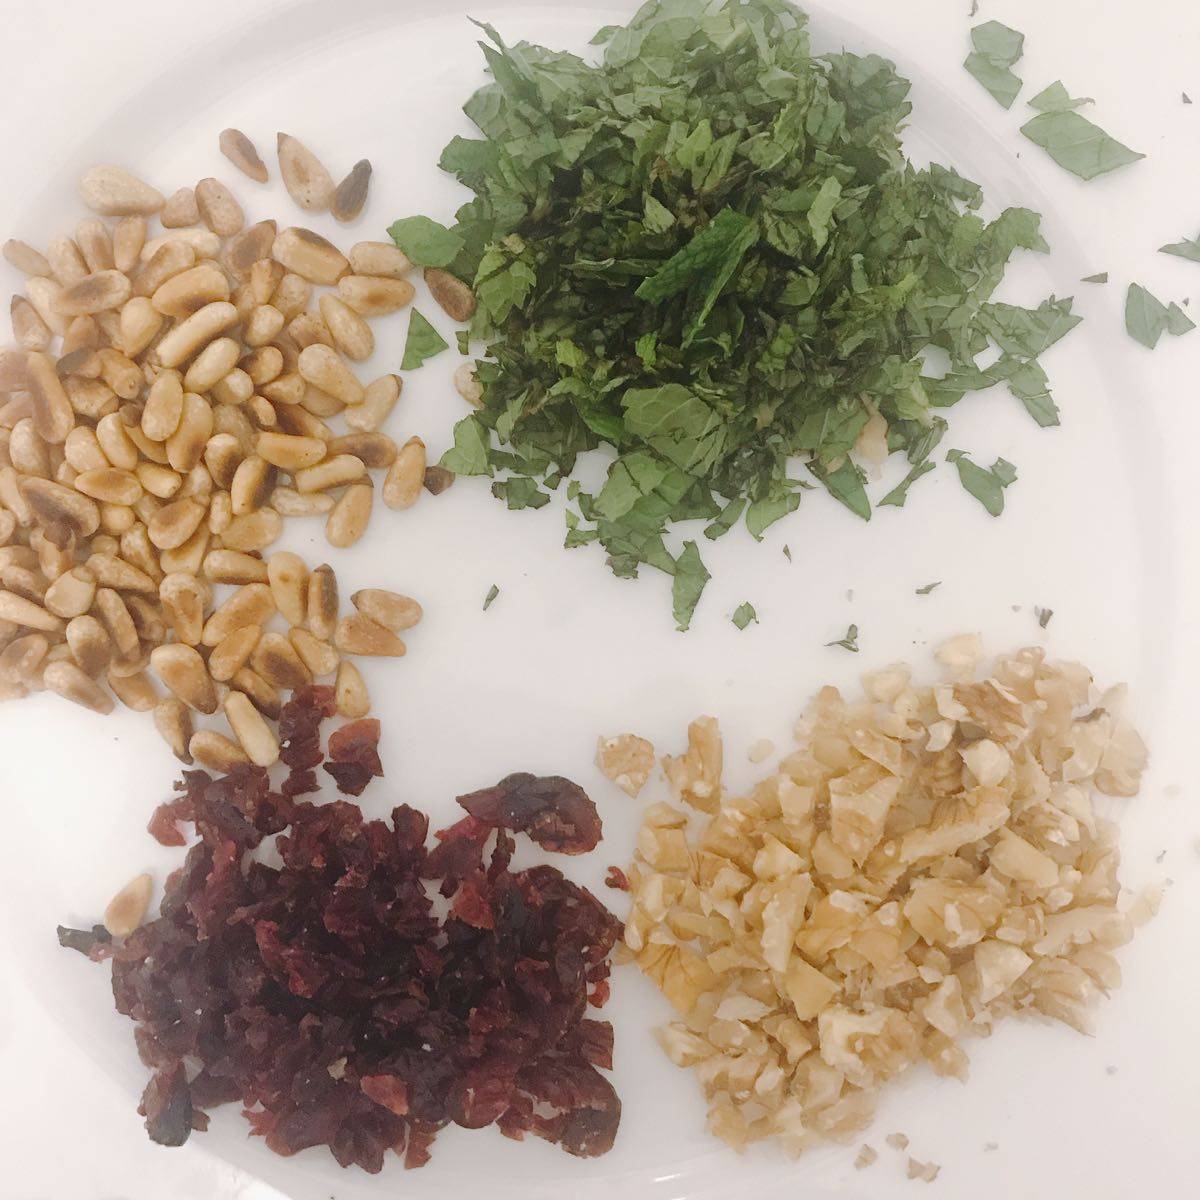 Step 2, chop and prep ingredients for the toppings and salad. Mint, pine nuts, walnuts and cranberries.